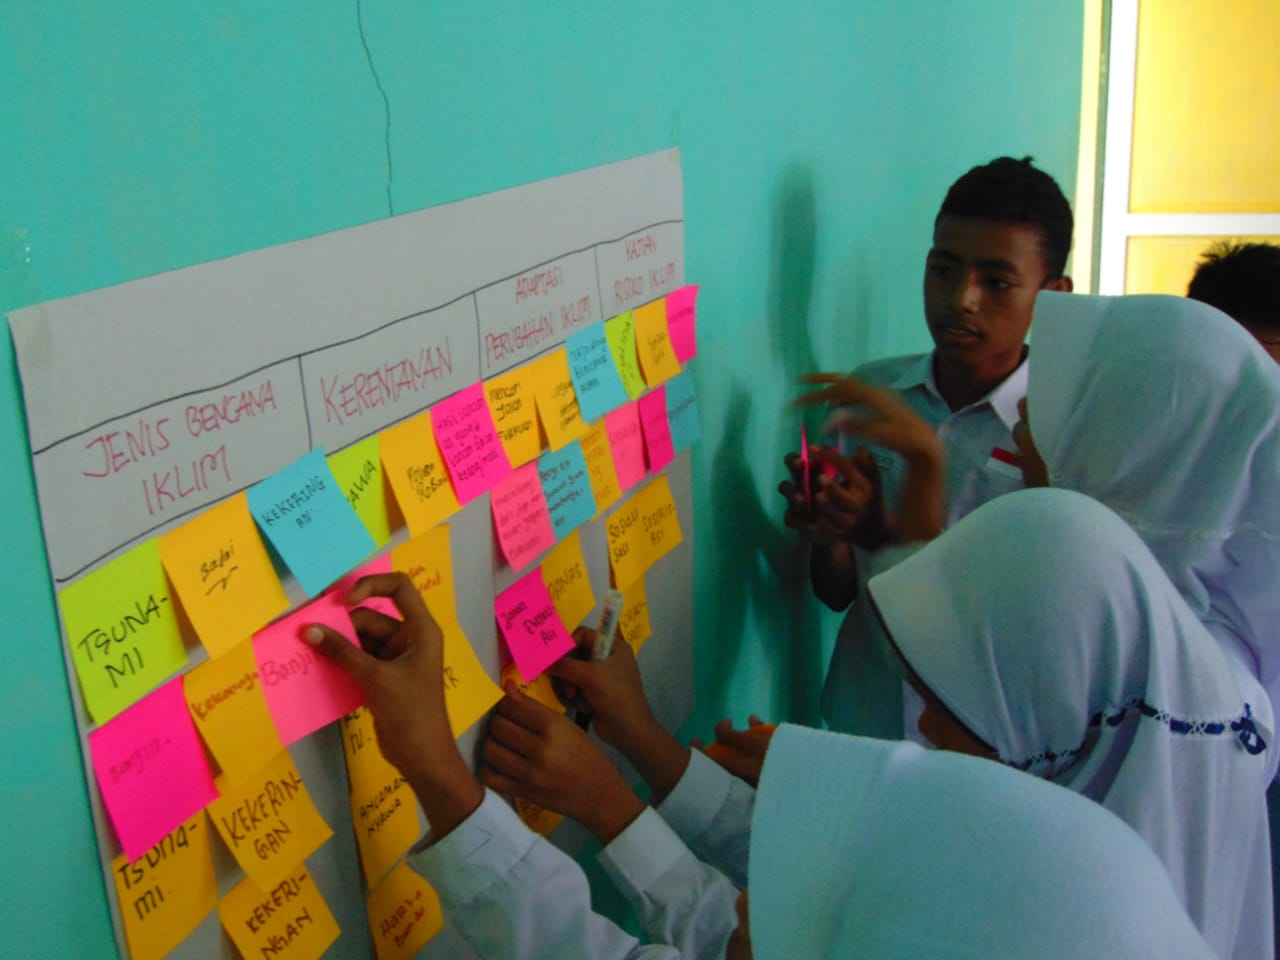 MTs Negeri 04 Siri Sori Islam students participated in disaster risk assessment at their school. Photo: USAID APIK Documentation